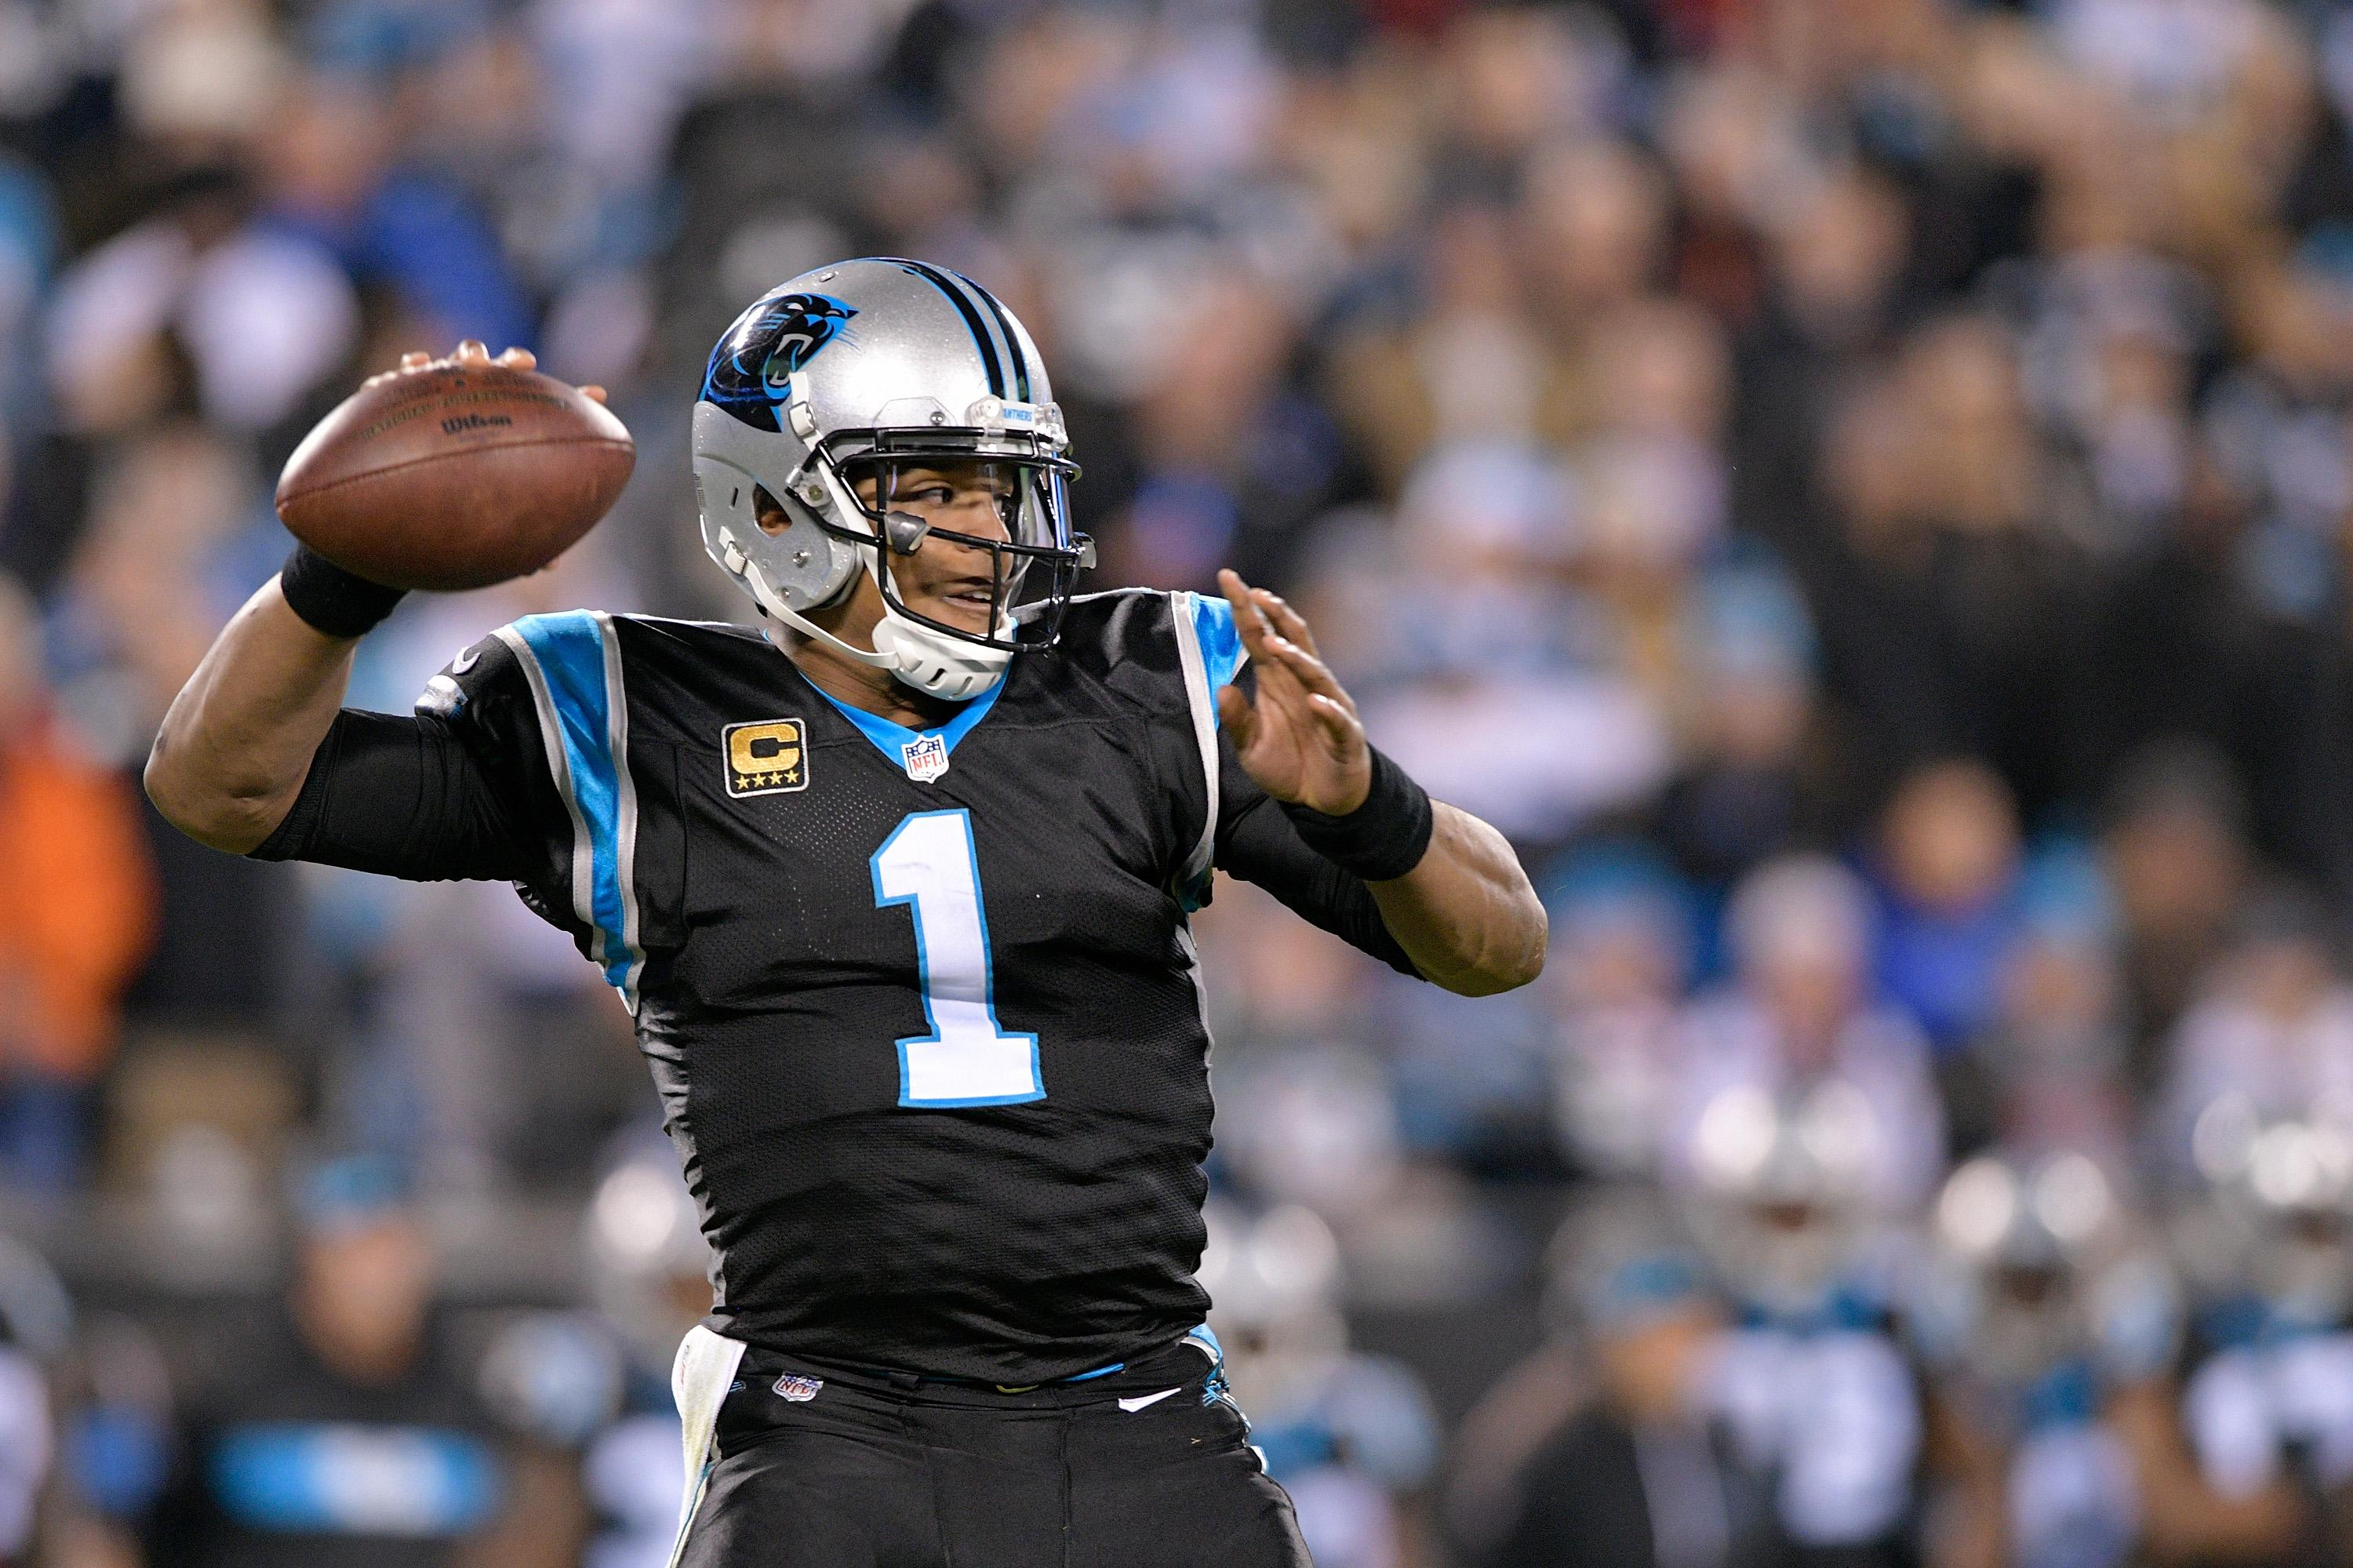 Cam Newton trash talk backfires when he backs it up with costly interception